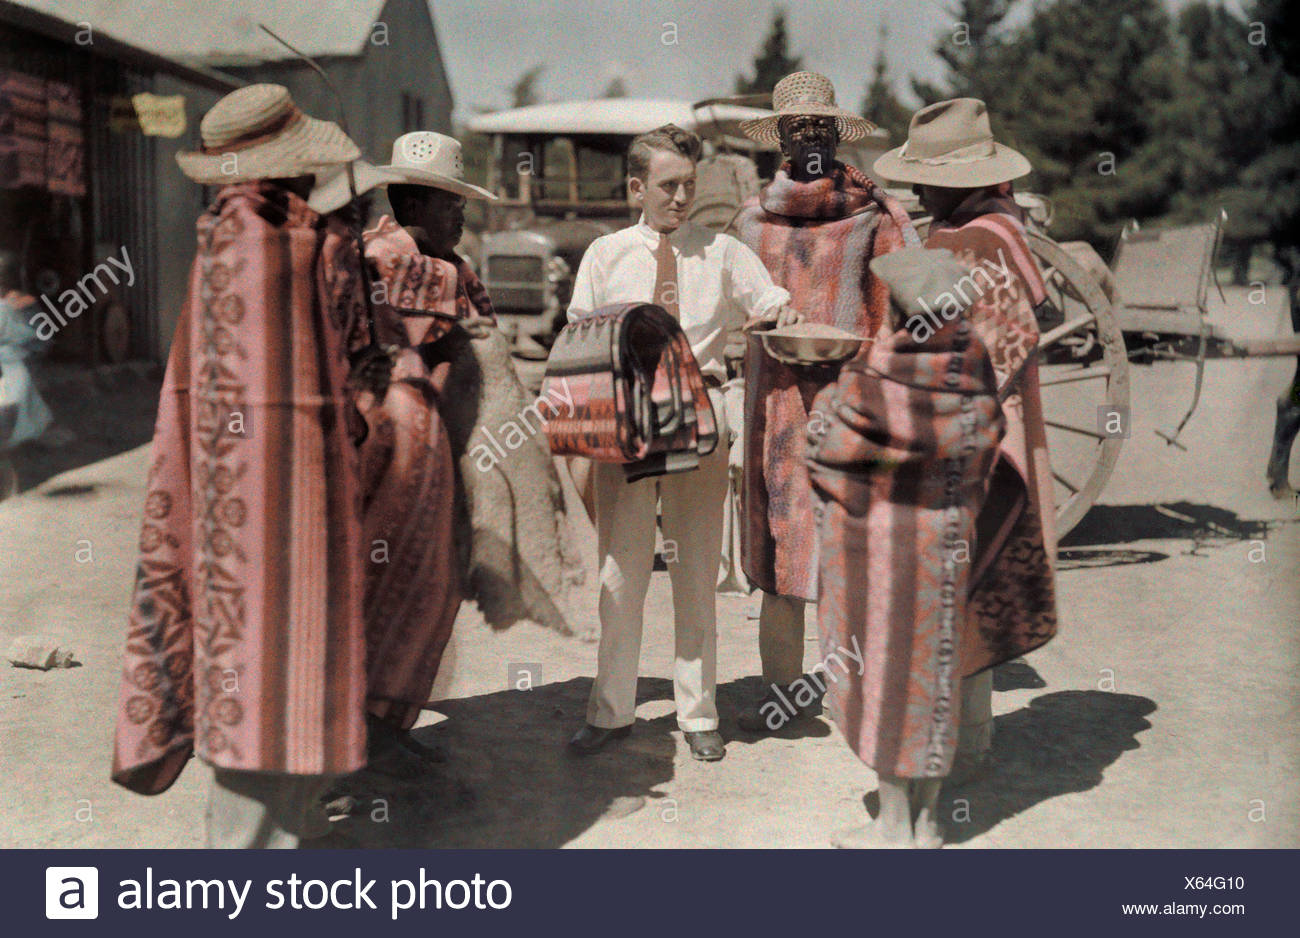 A business man swaps grain for blankets made by Basuto locals. - Stock Image